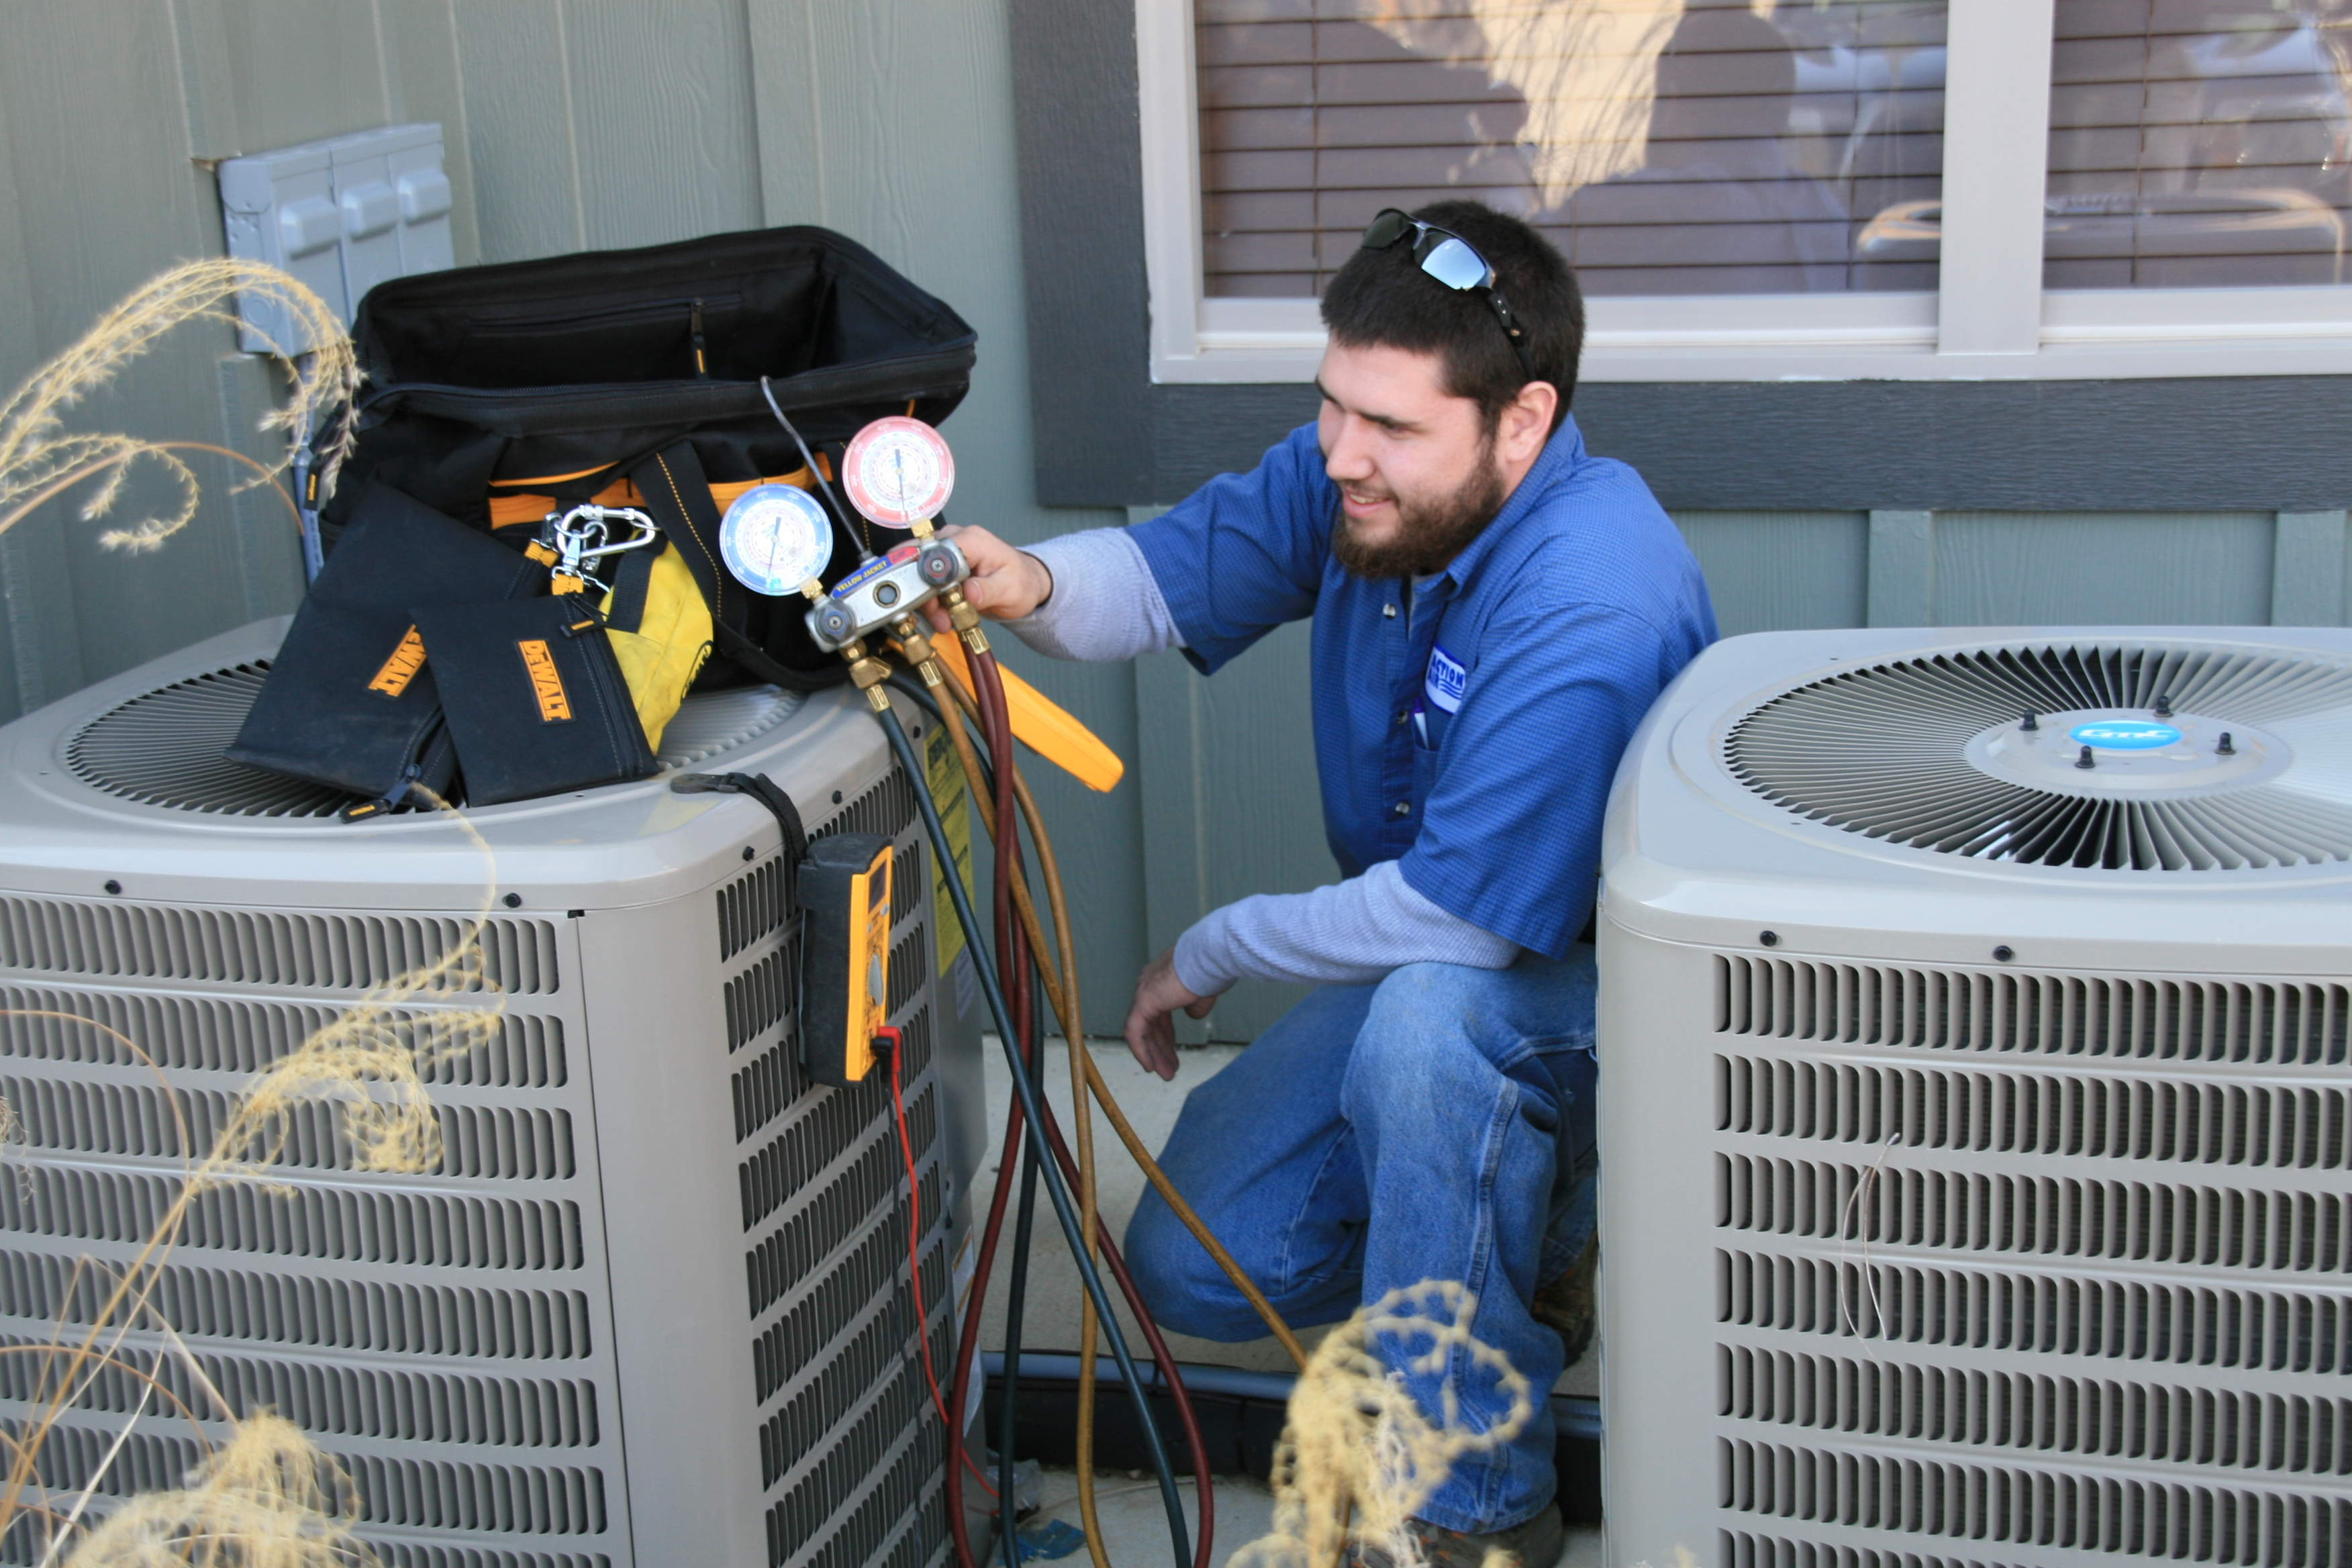 HVAC, Heating Venting Cooling Central Air Conditioning Systems Service & Repair